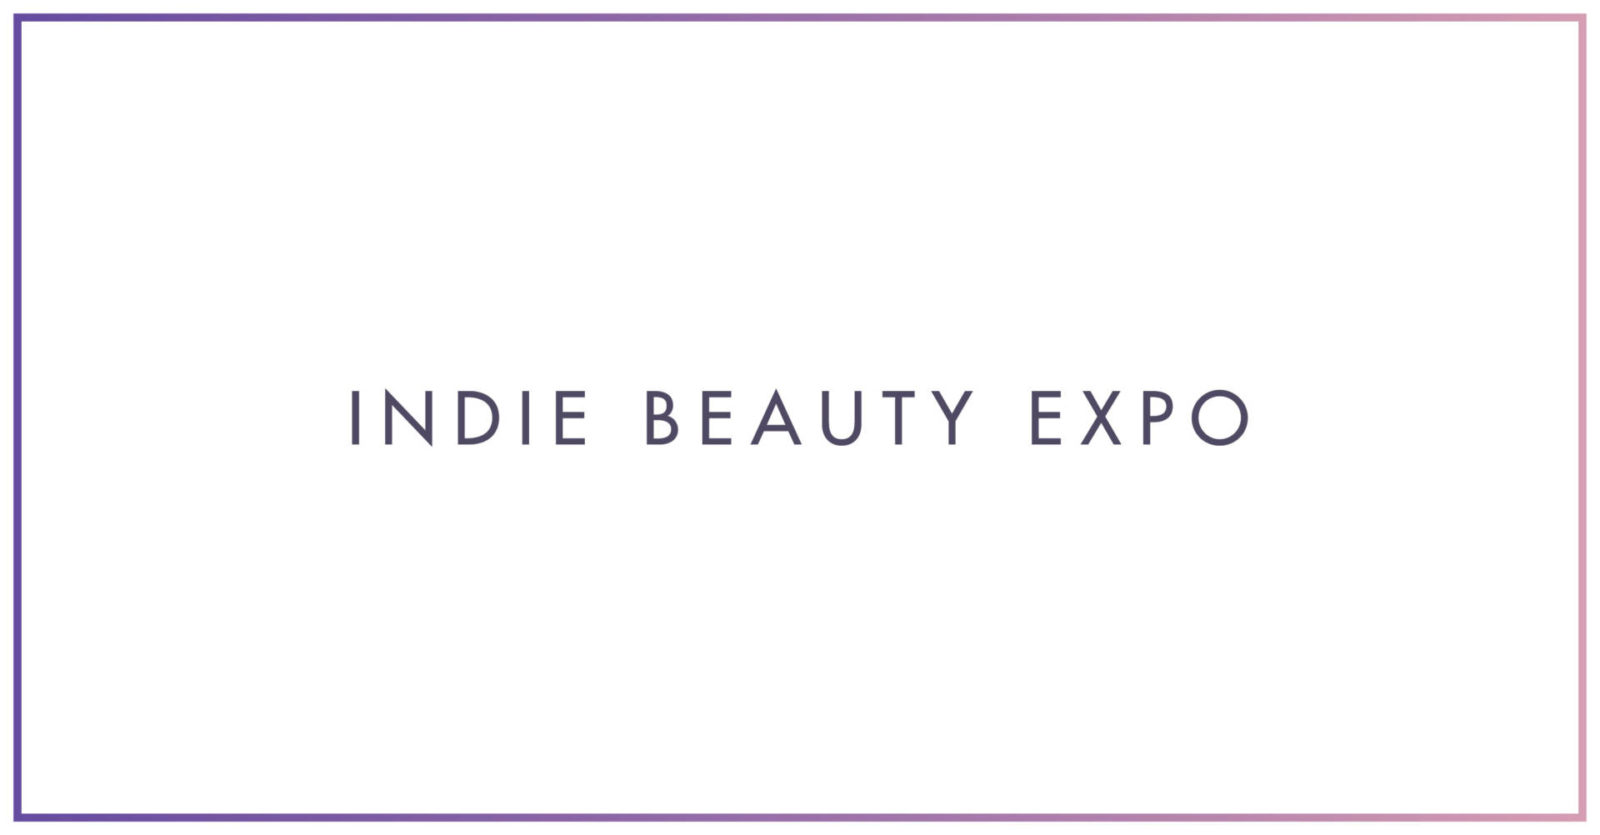 Indie Beauty Expo(sed)